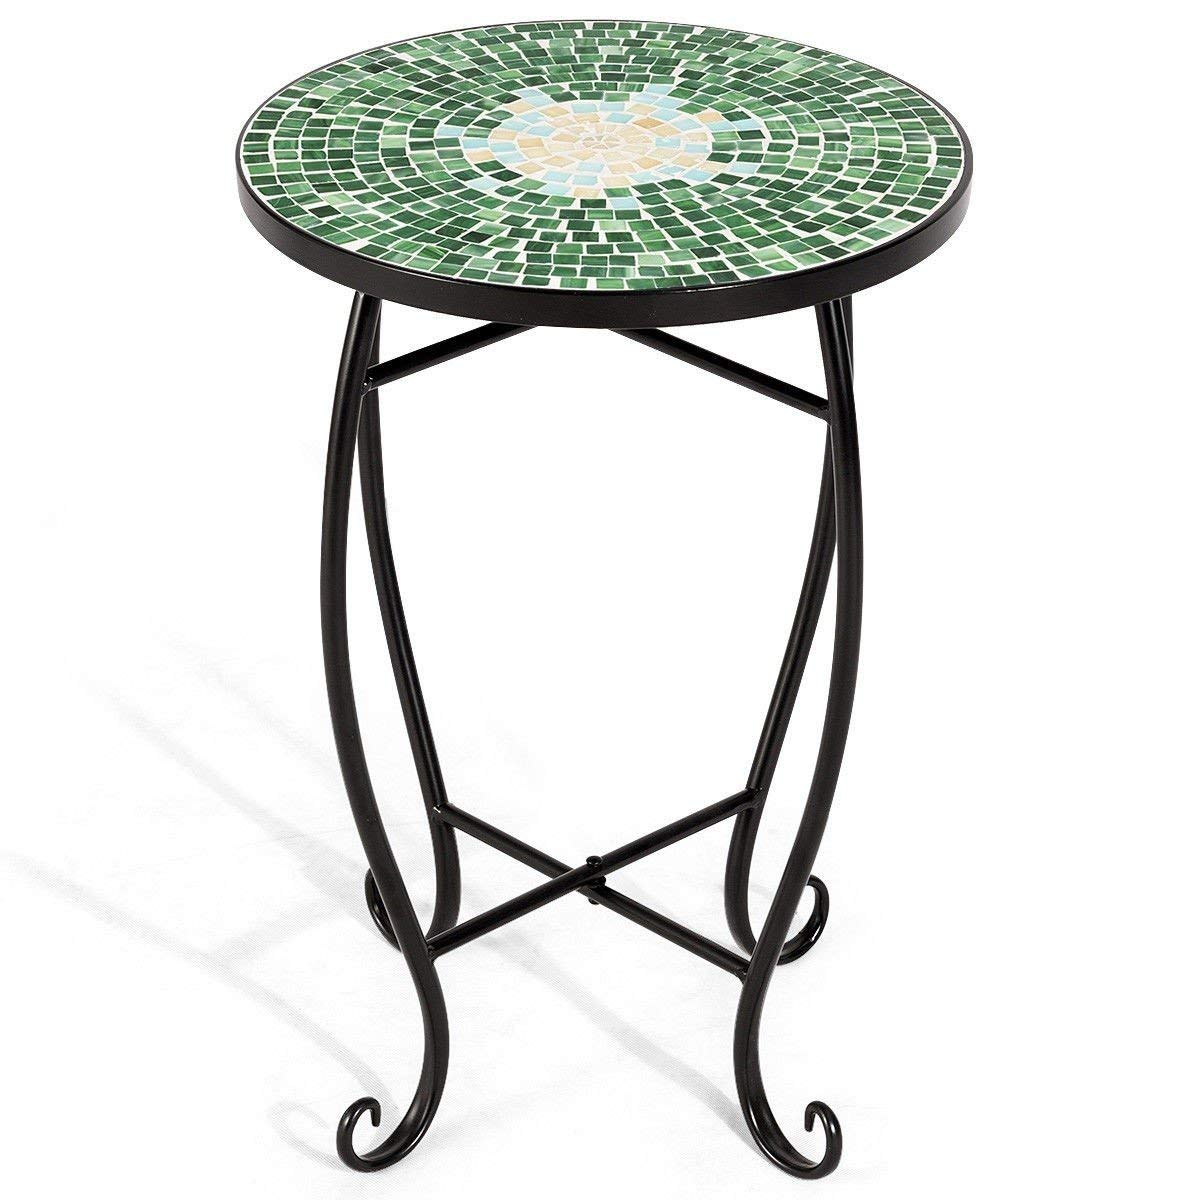 mosaic table garden find line accent outdoor get quotations custpromo metal round side plant stand with cobalt glass top indoor target kitchen mats pottery barn coffee inch wide